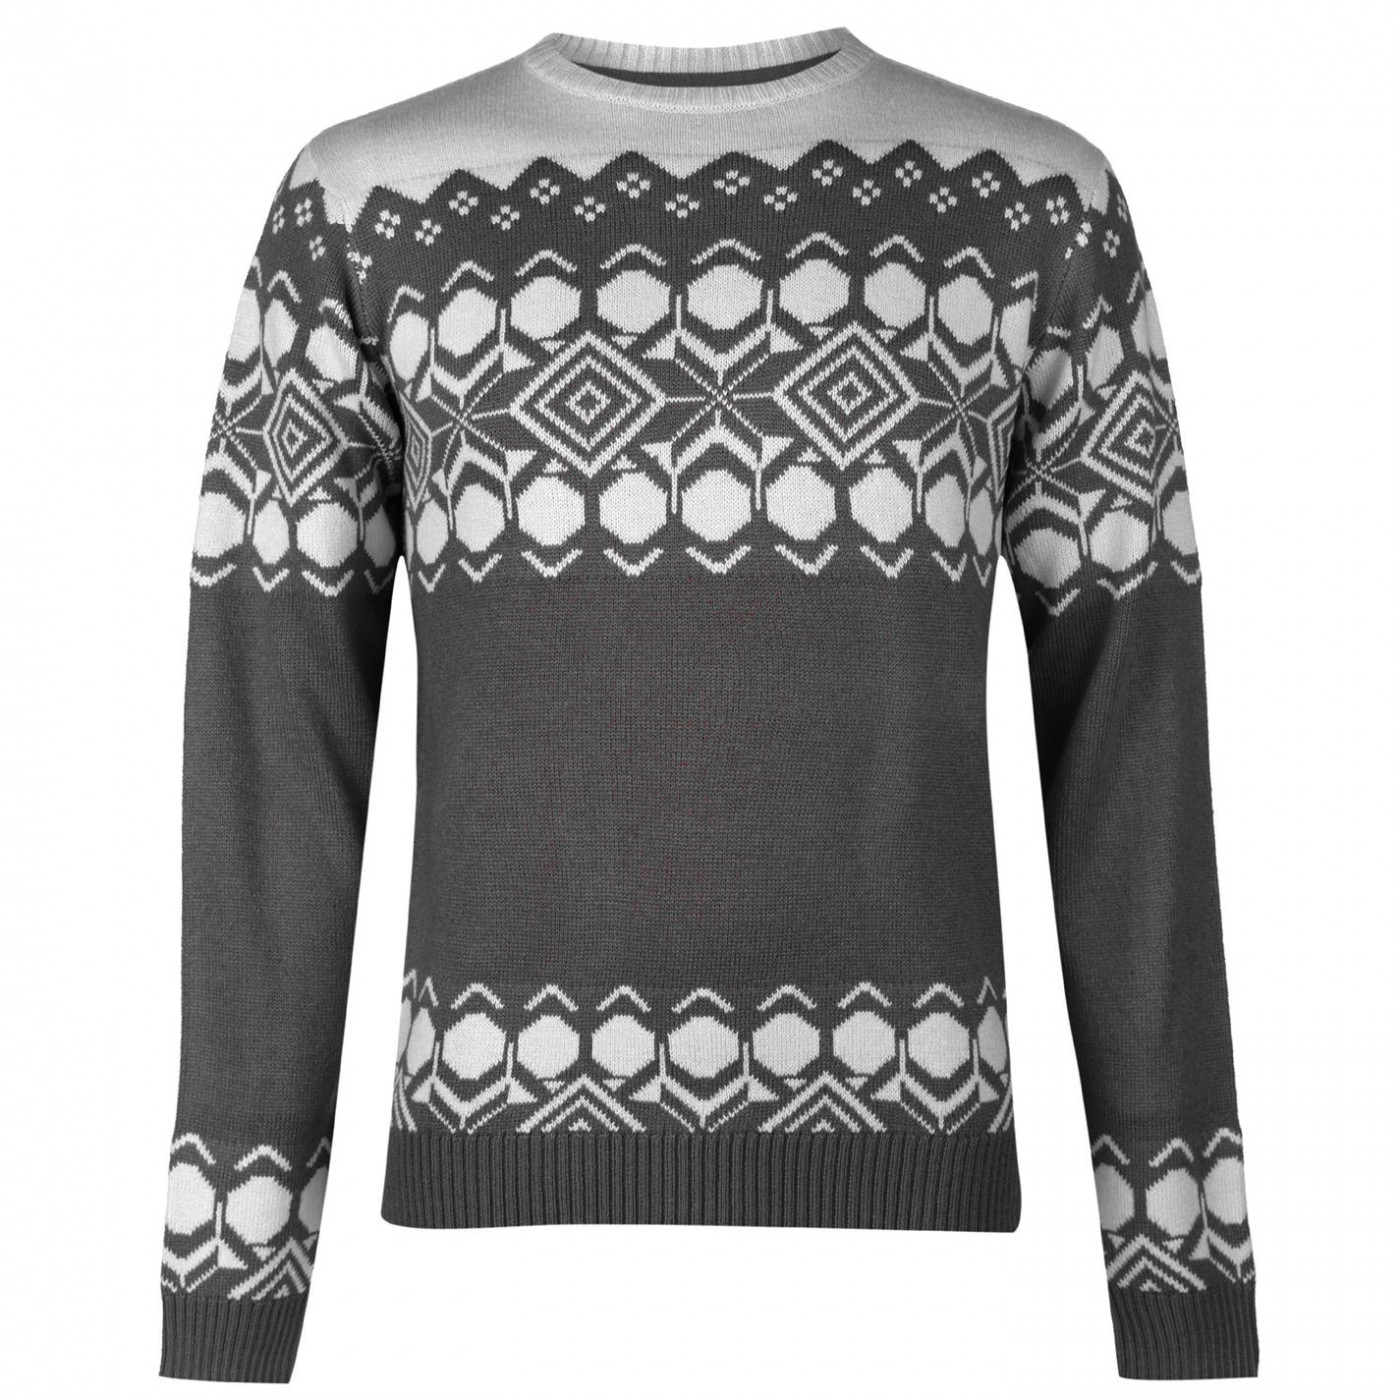 Details about Pierre Cardin Mens Knit Jumper Blouse Pullover Long Sleeve Crew Neck Top